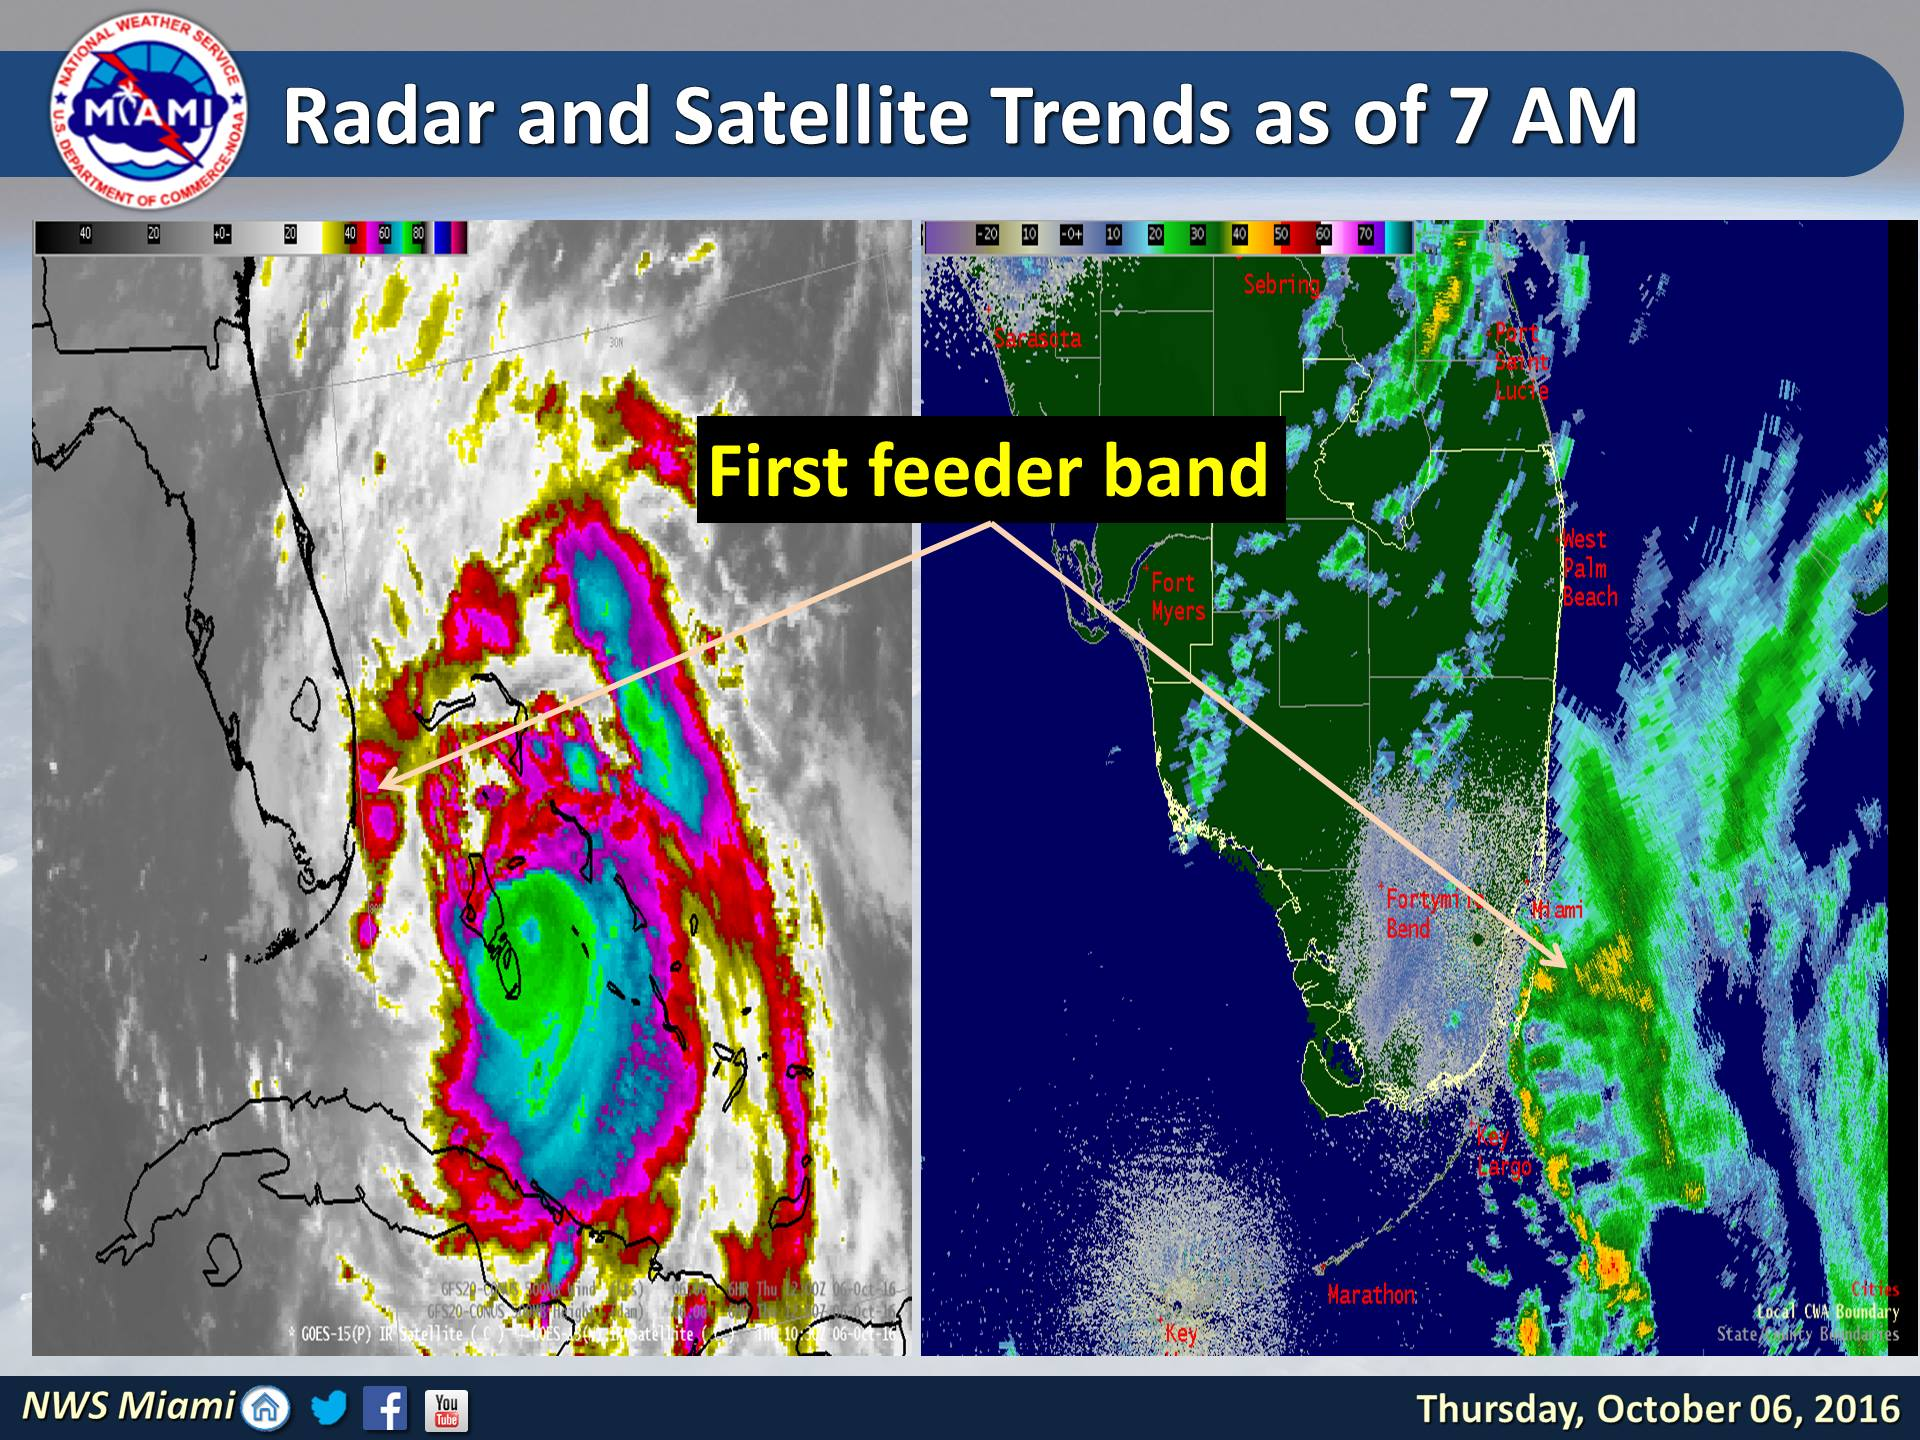 Radar as of Thursday morning shows rain bands already moving into portions of south Florida while Matthew pushes towards the Bahamas. (NWS Miami)